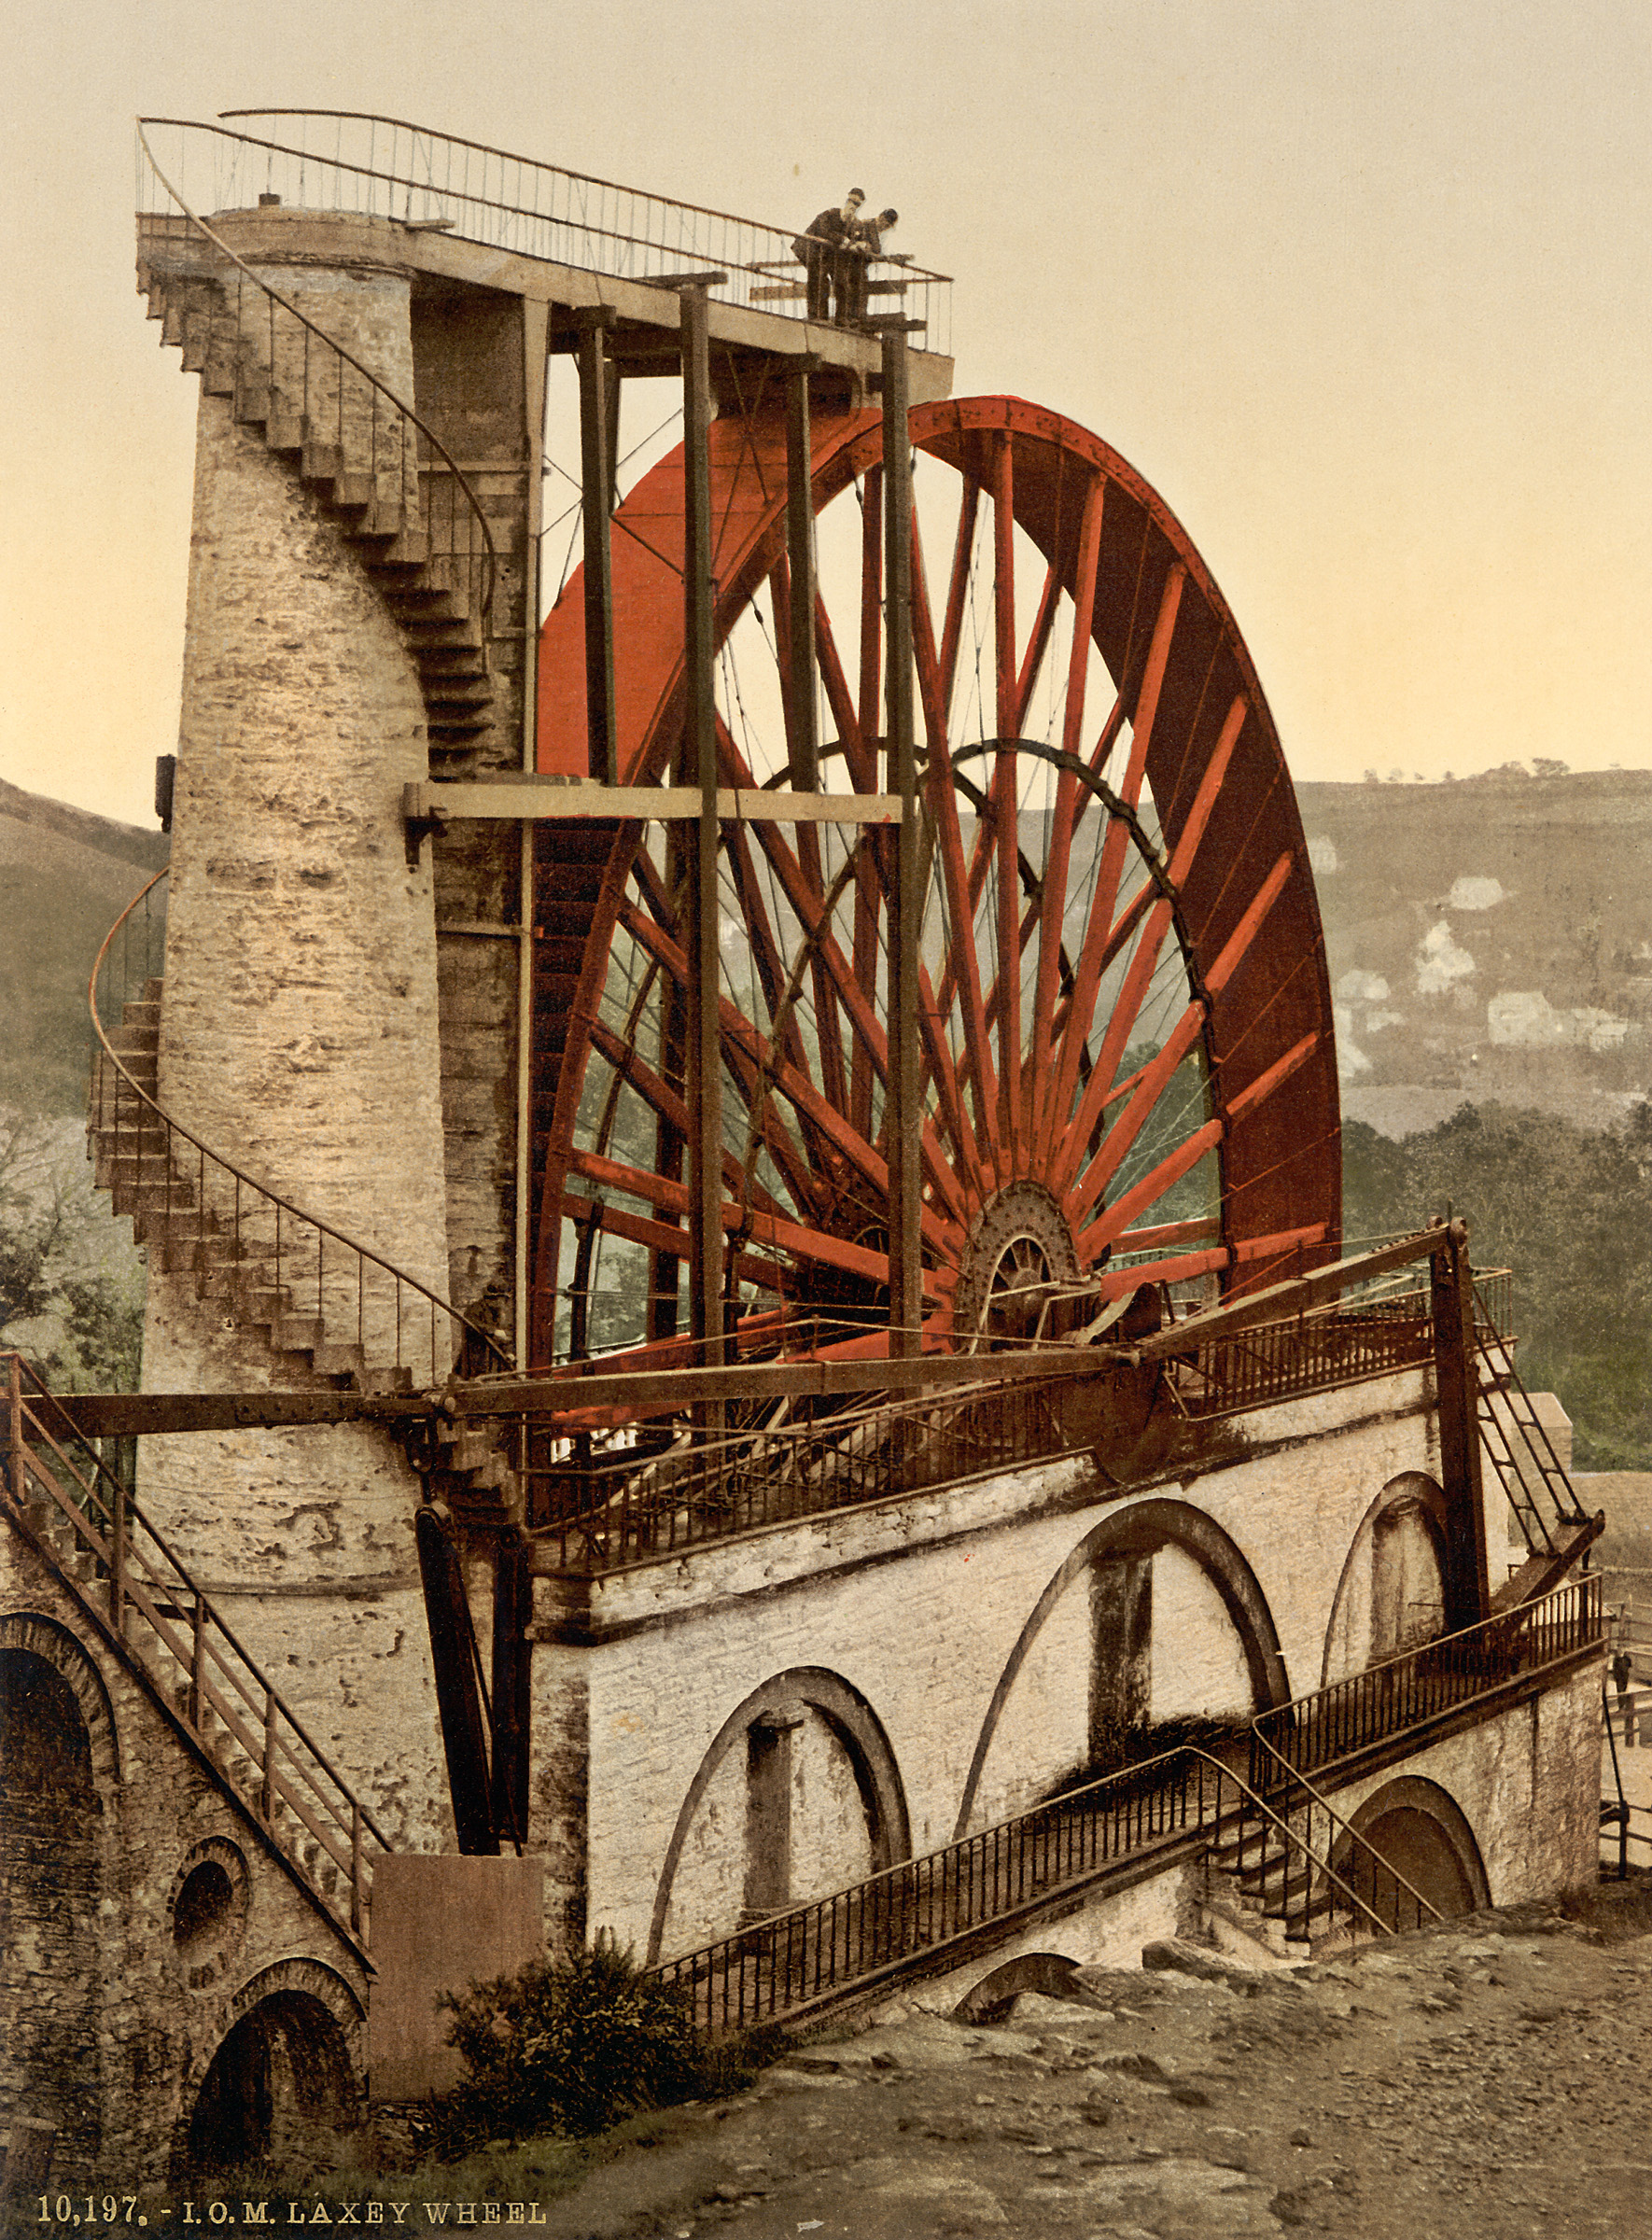 The Wheel, Laxey, Isle of Man 1900 - Foto: WikiCommons